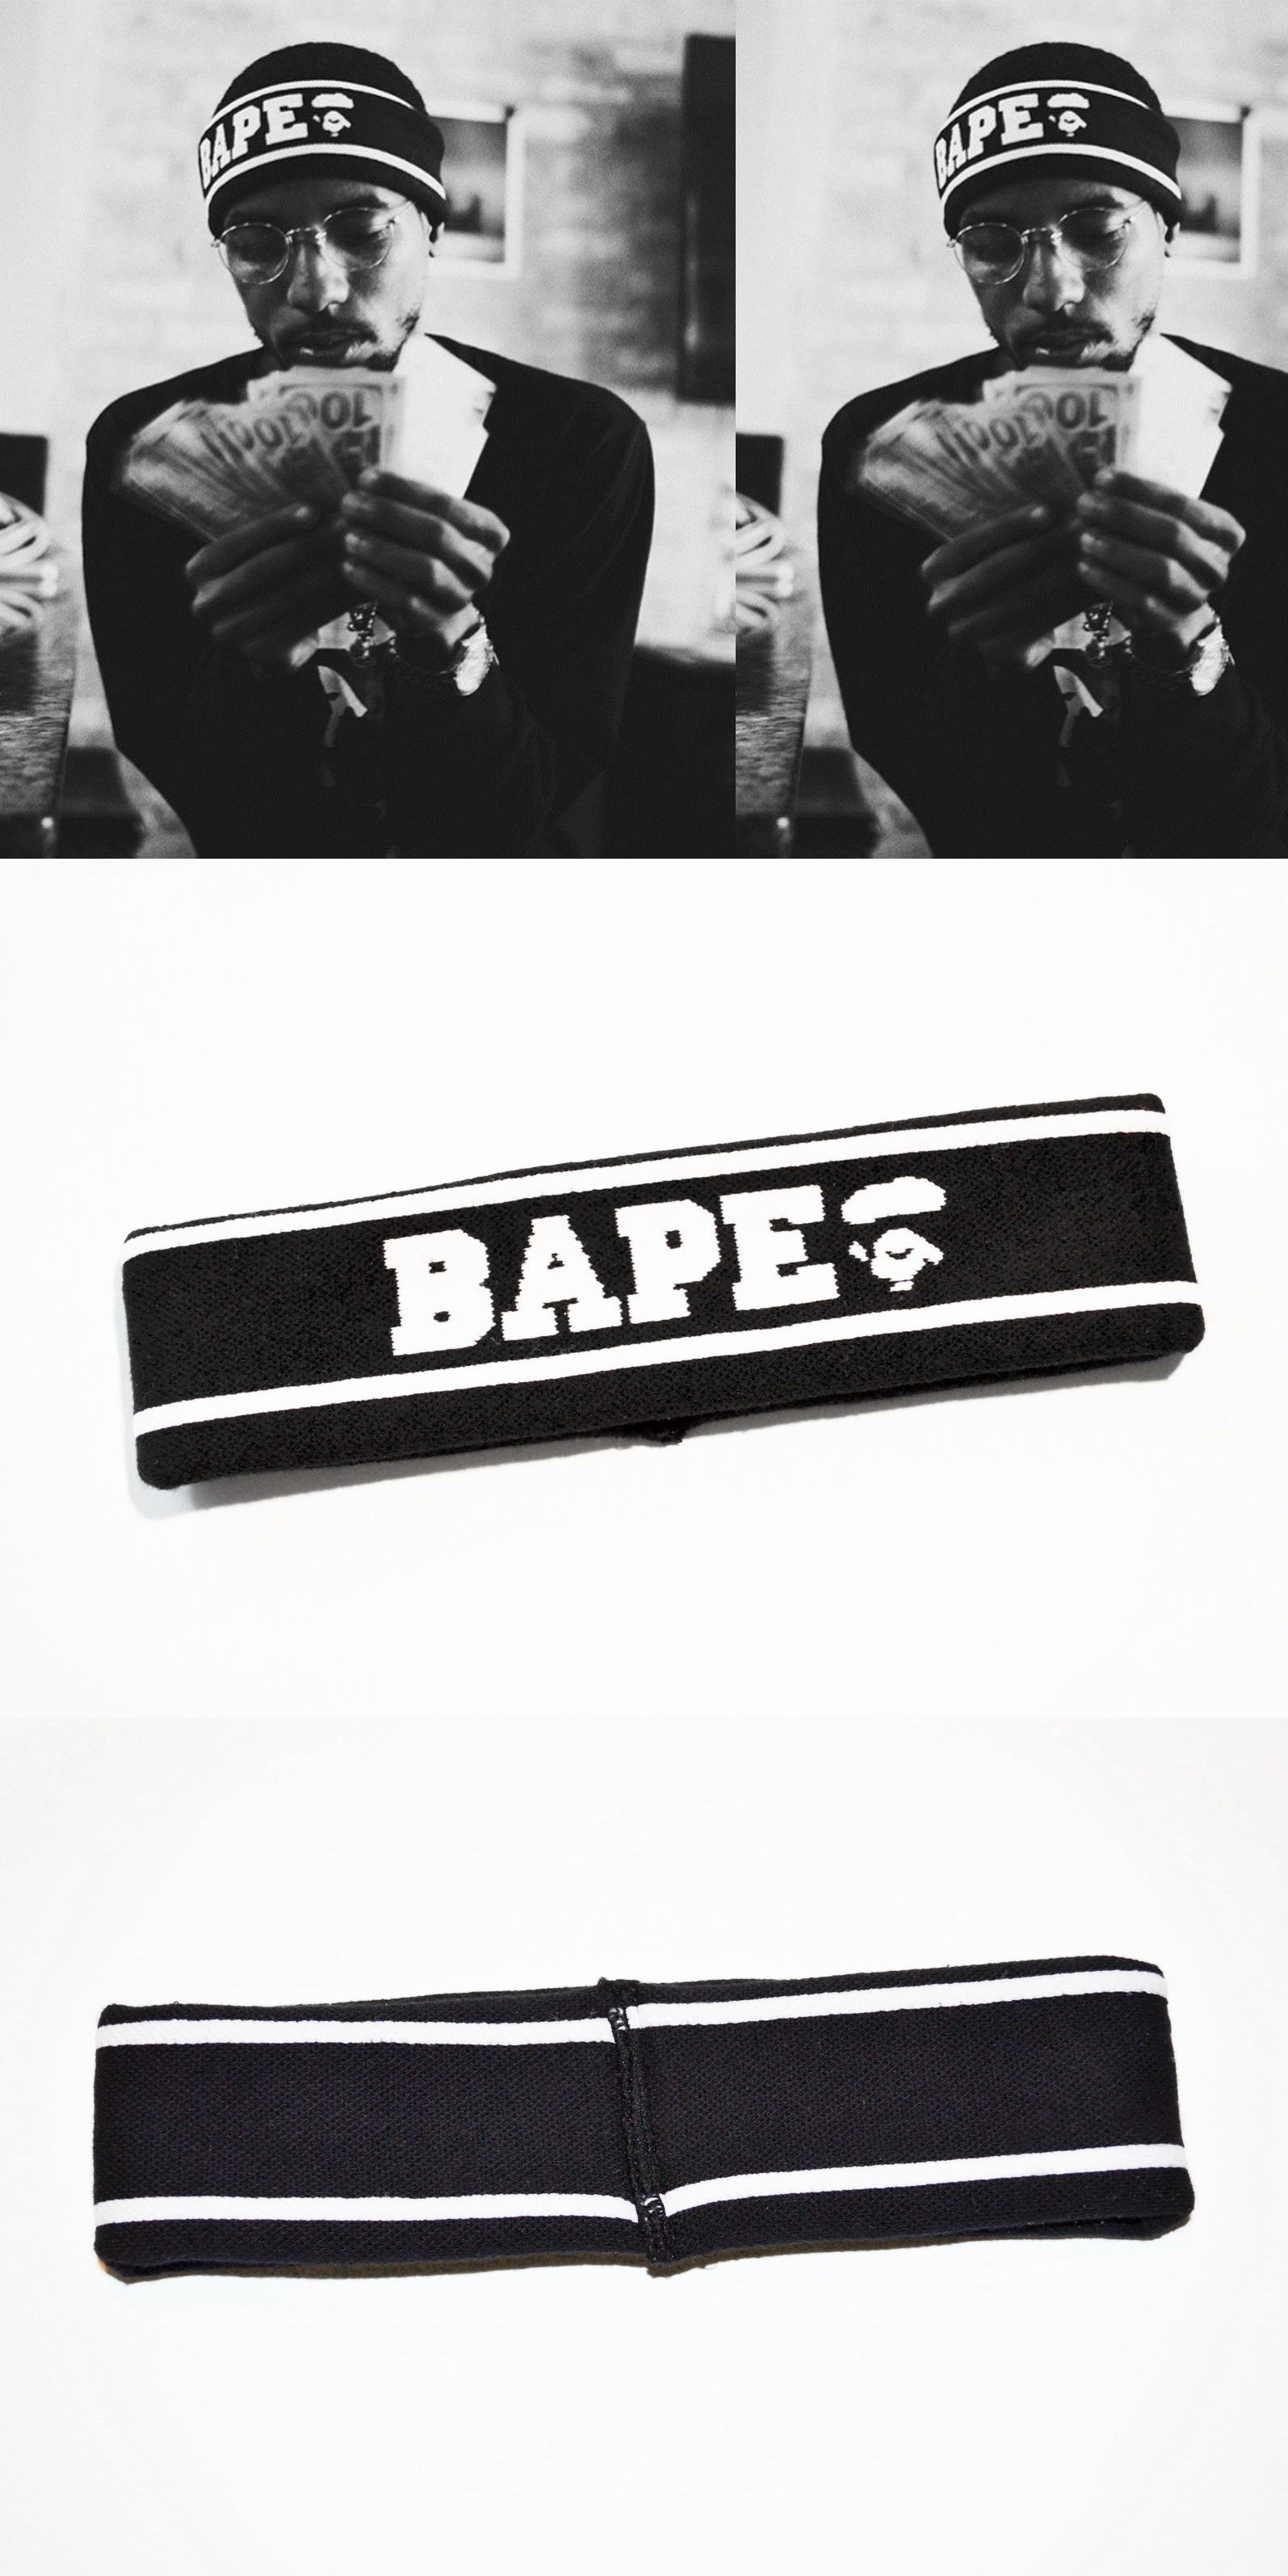 Other Mens Accessories 1060  A Bathing Ape Bape Black Headband Supreme -   BUY IT NOW ONLY   43.99 on eBay! 907c803a7bc